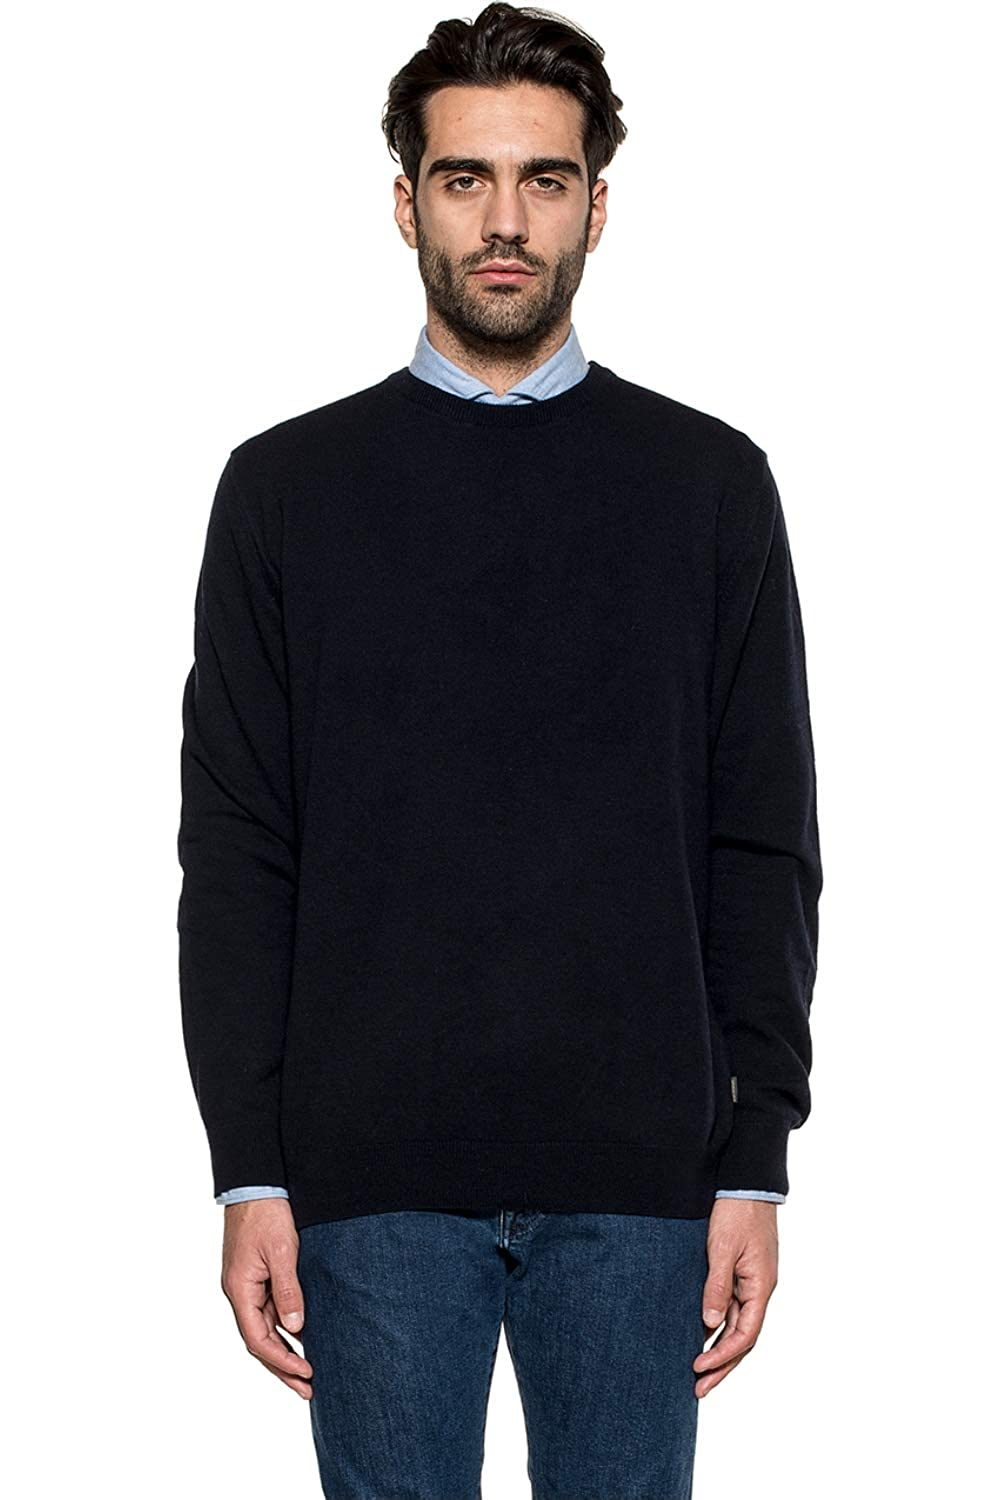 Barbour BAMAG0471 MKN NY94 Sweaters Herren